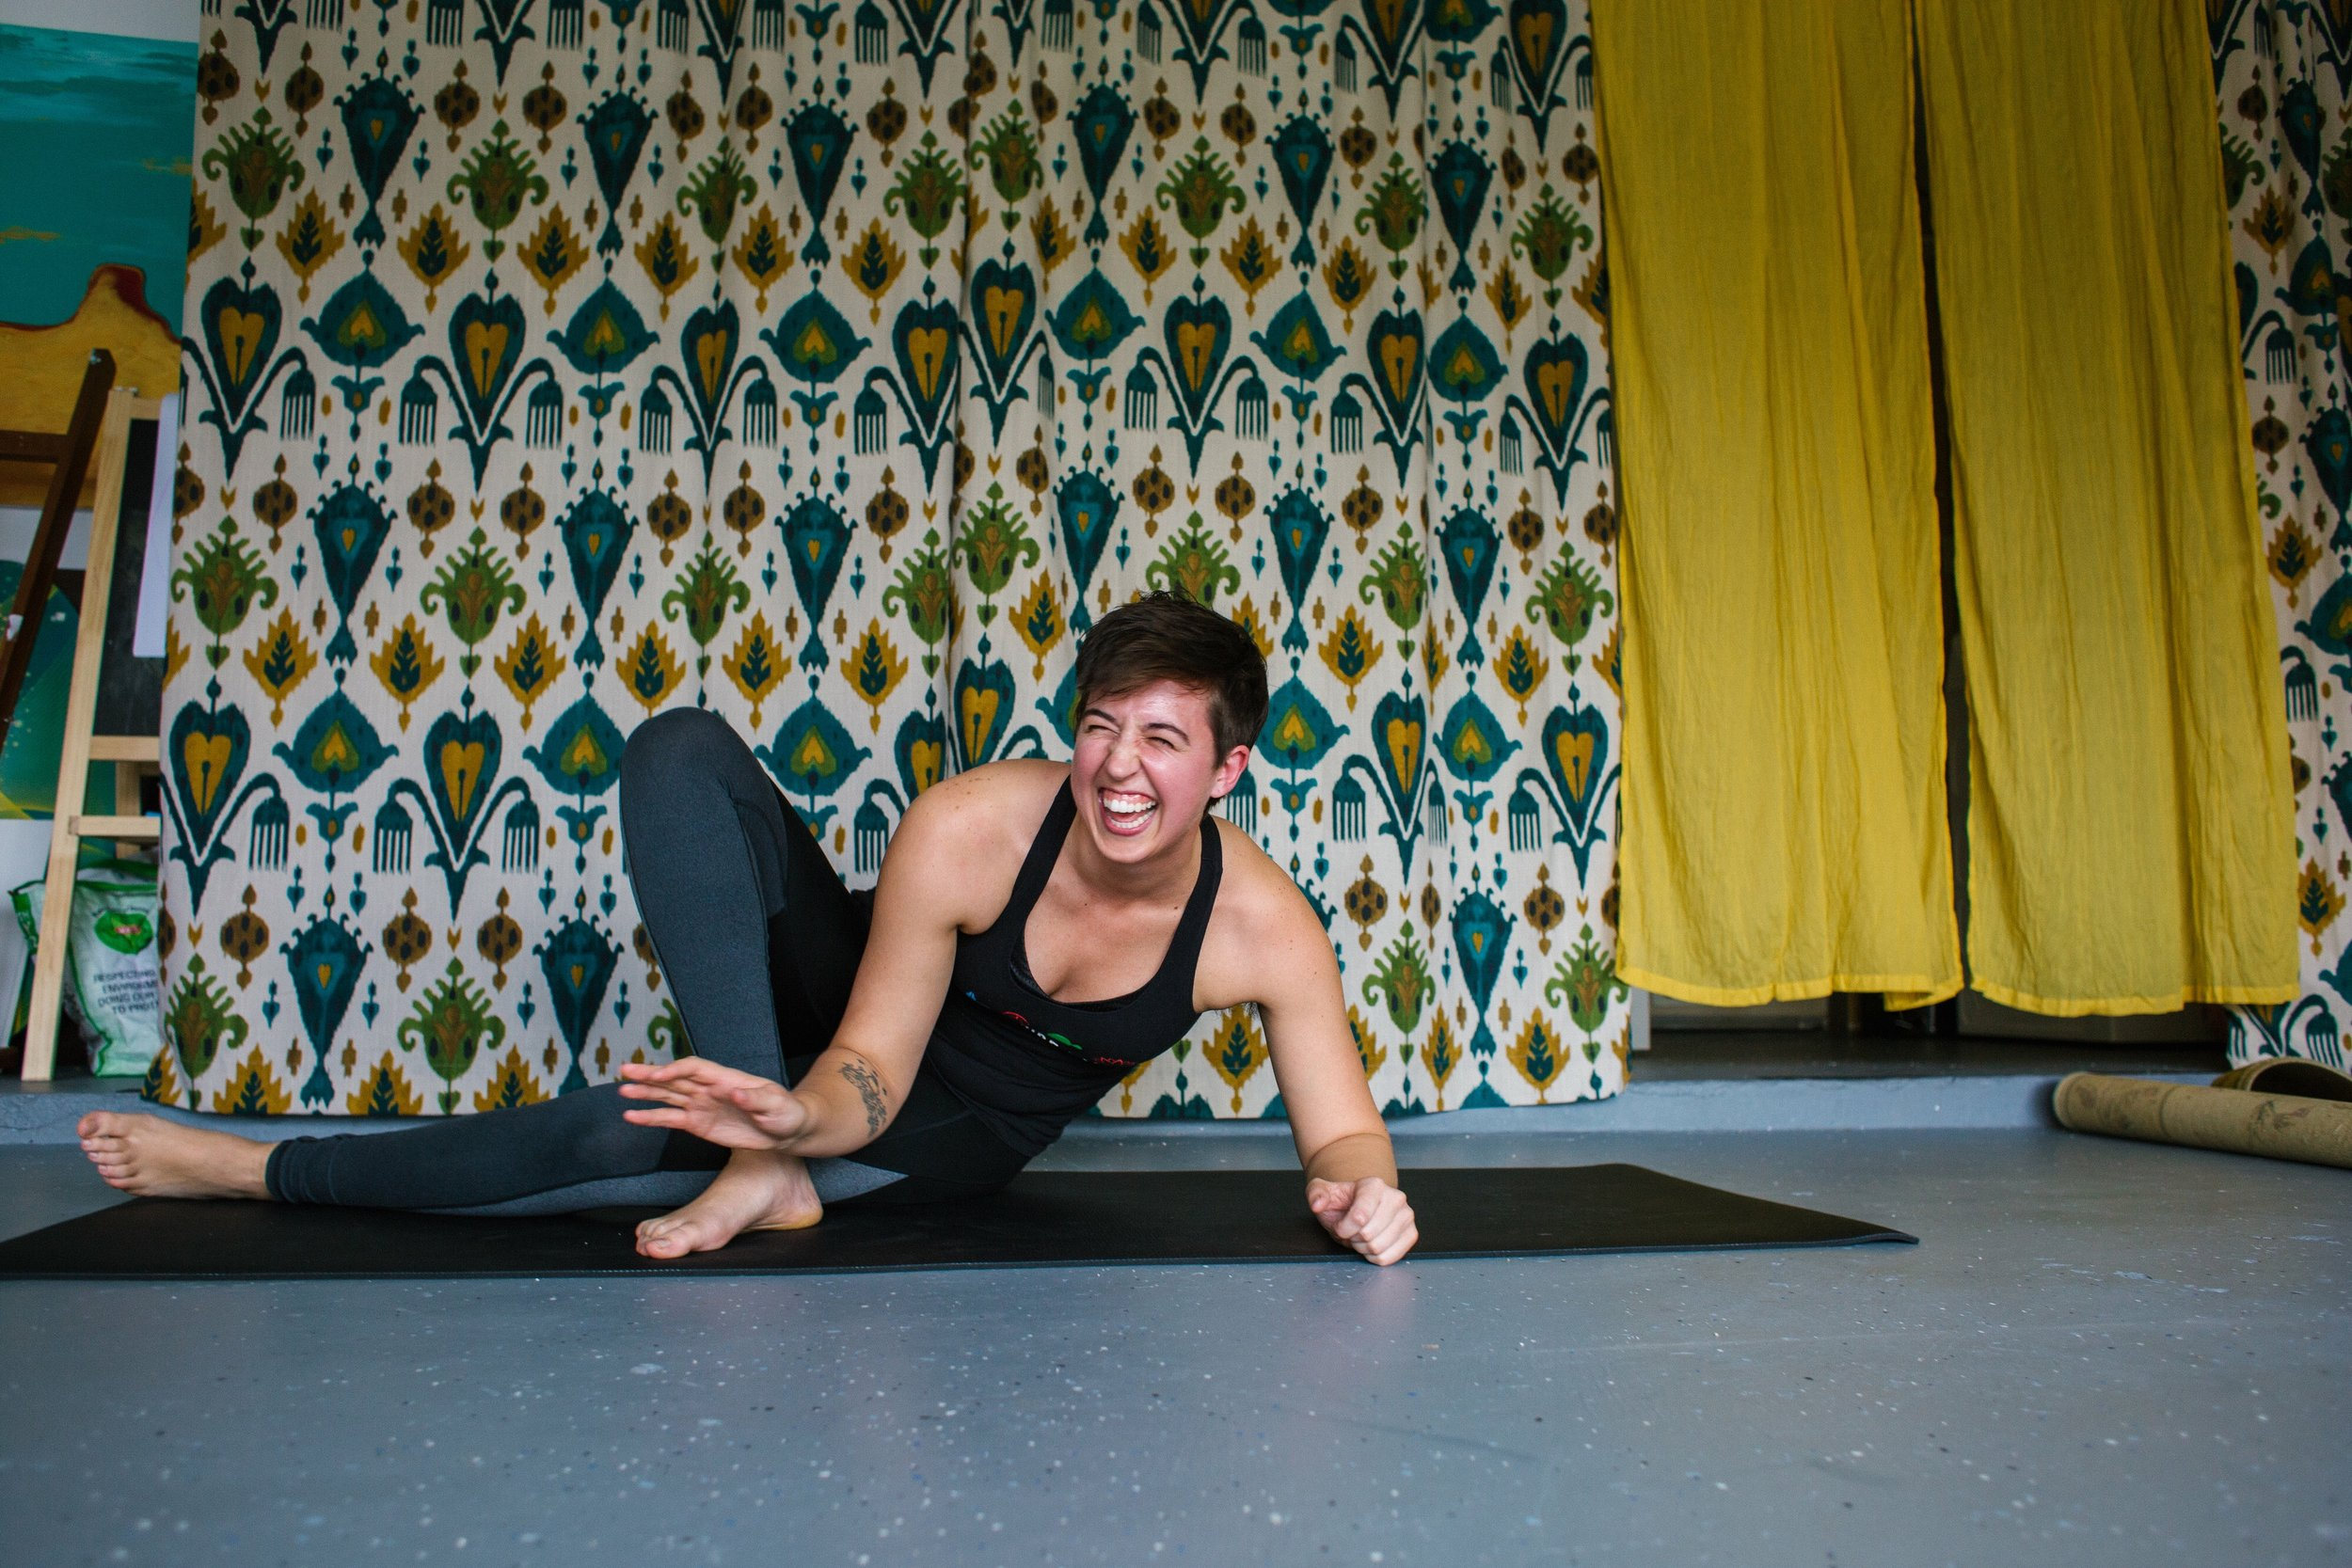 yoga + therapy - Abi Robins brings talks about being present in our bodies long enough to work through pain and get down to the root issues.